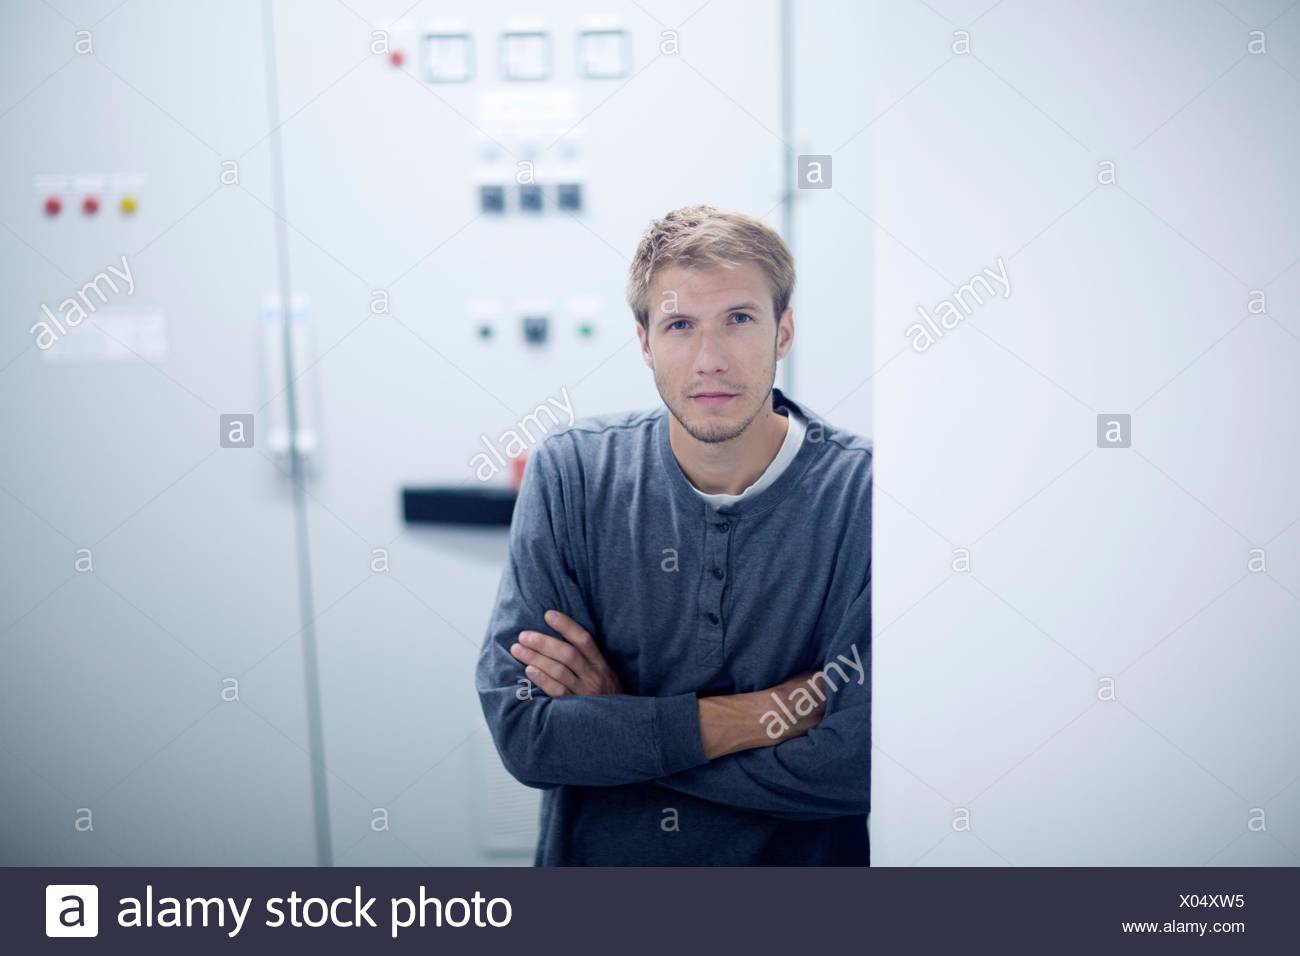 Portrait of young male technician in technical room - Stock Image